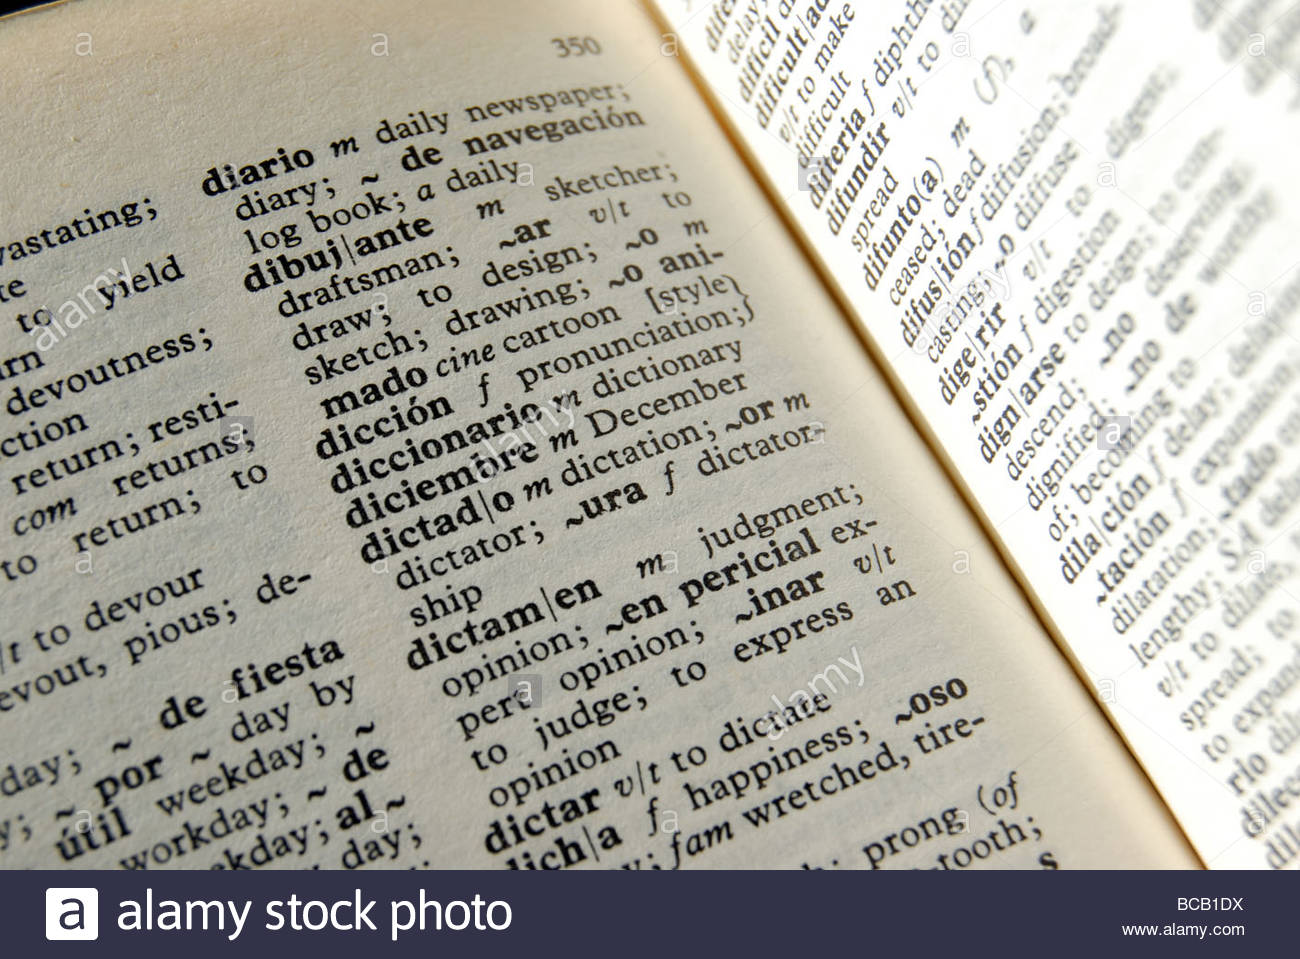 Spanish - English dictionary. Espanol - Ingles Diccionario. - Stock Image